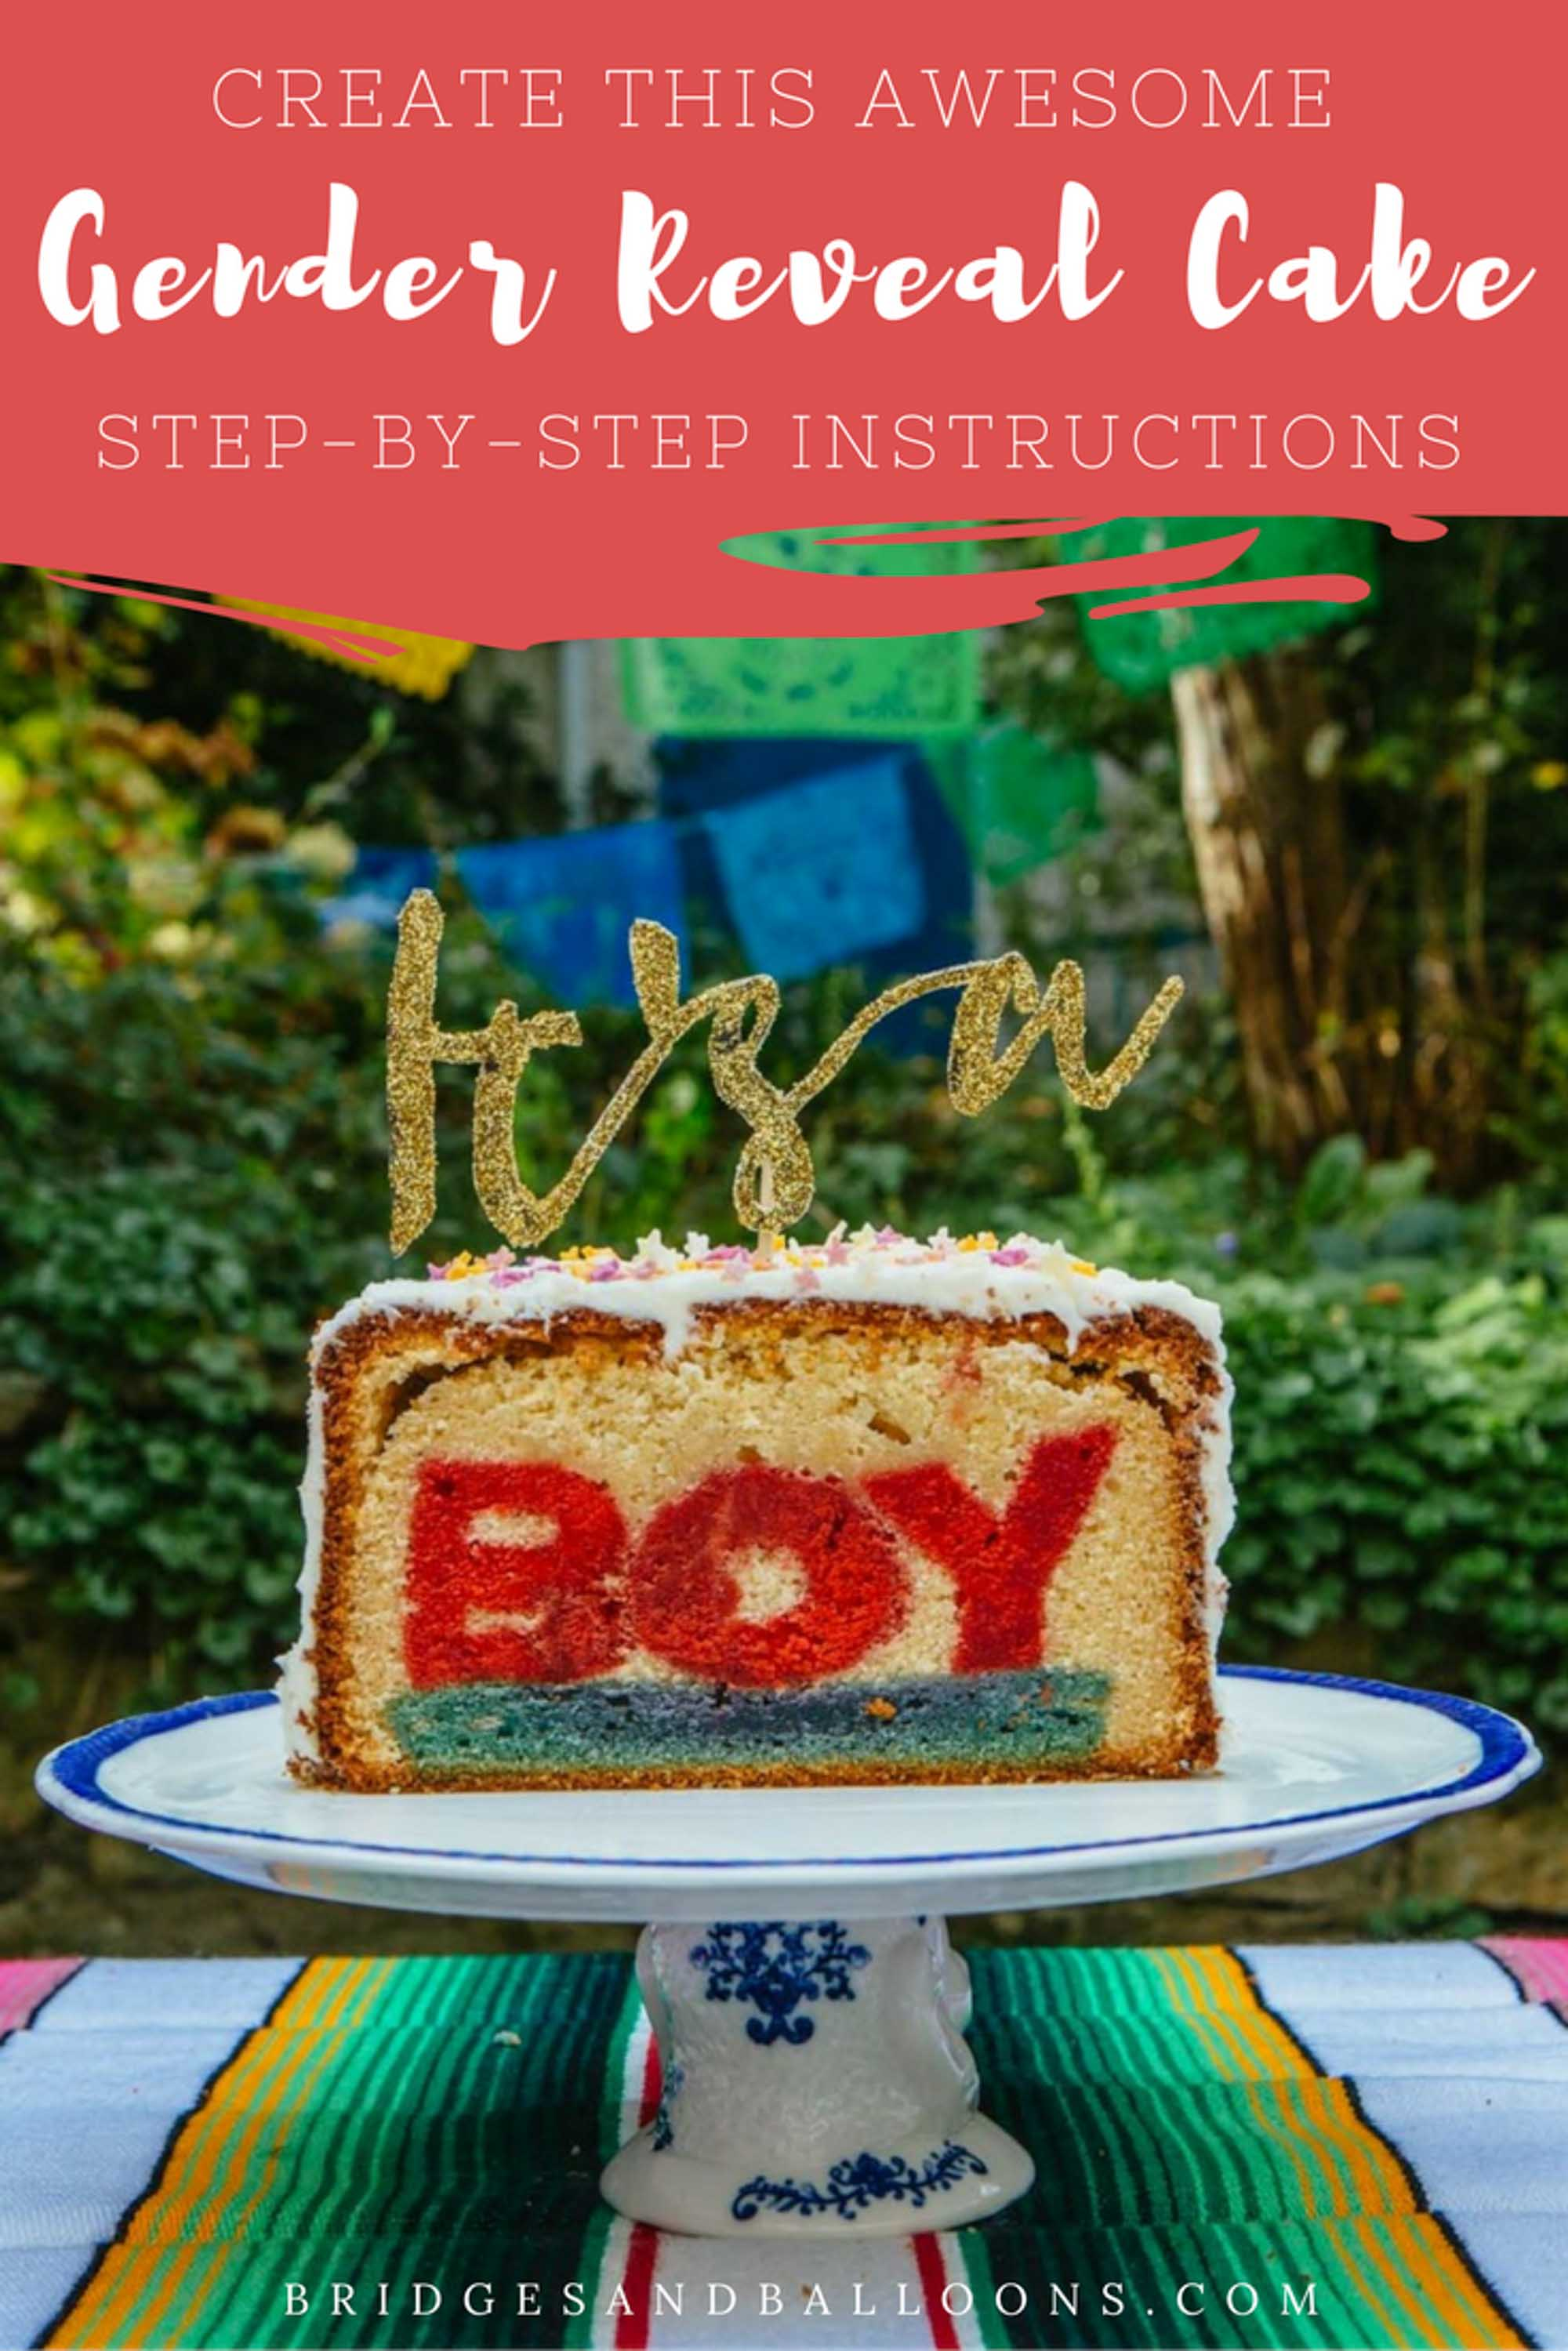 How to make a hidden word cake for your gender reveal party